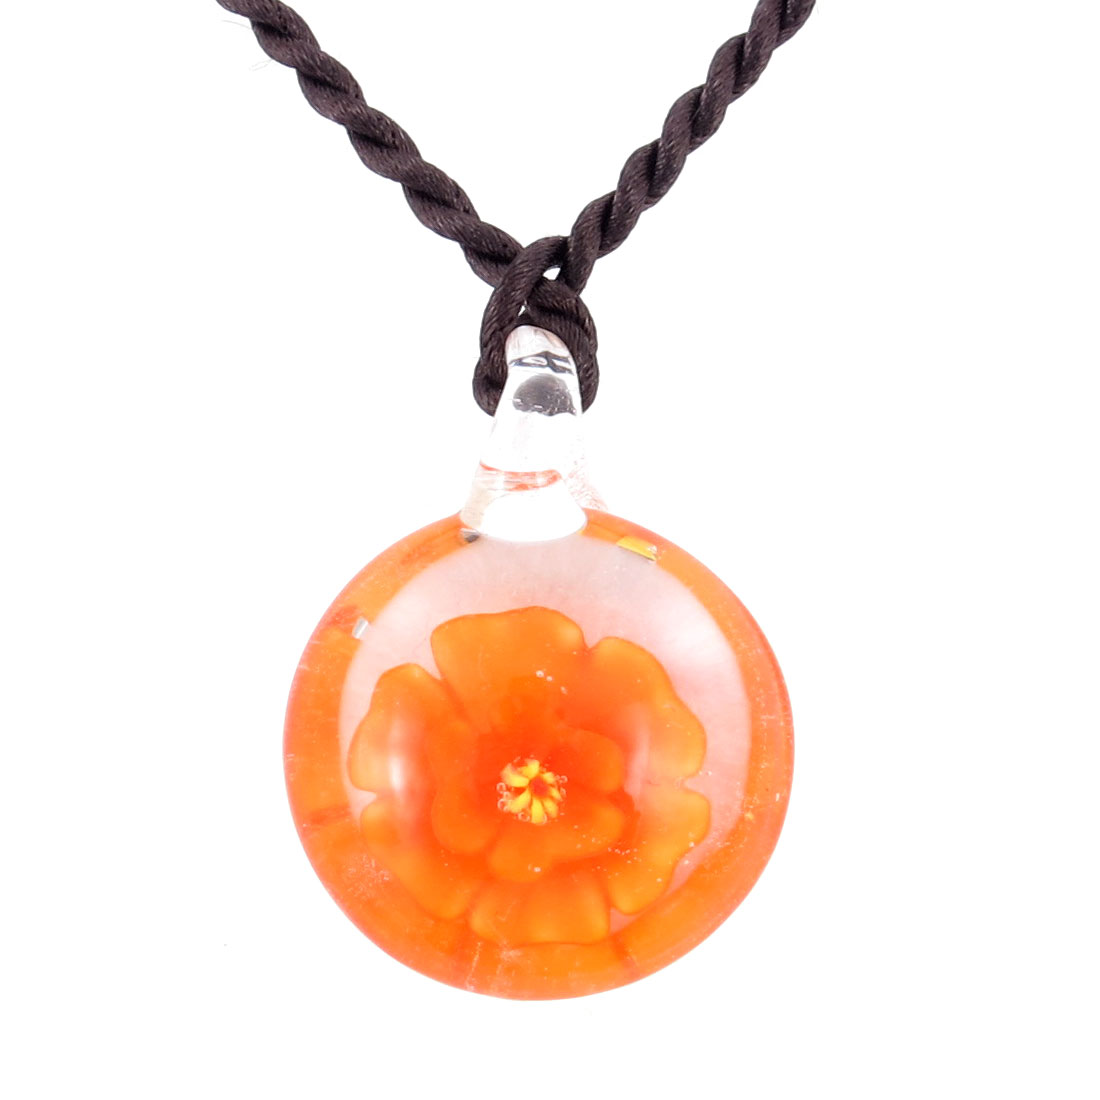 Lady Braided Rope 3D Flower Inside Round Glass Necklace Adornment Orange